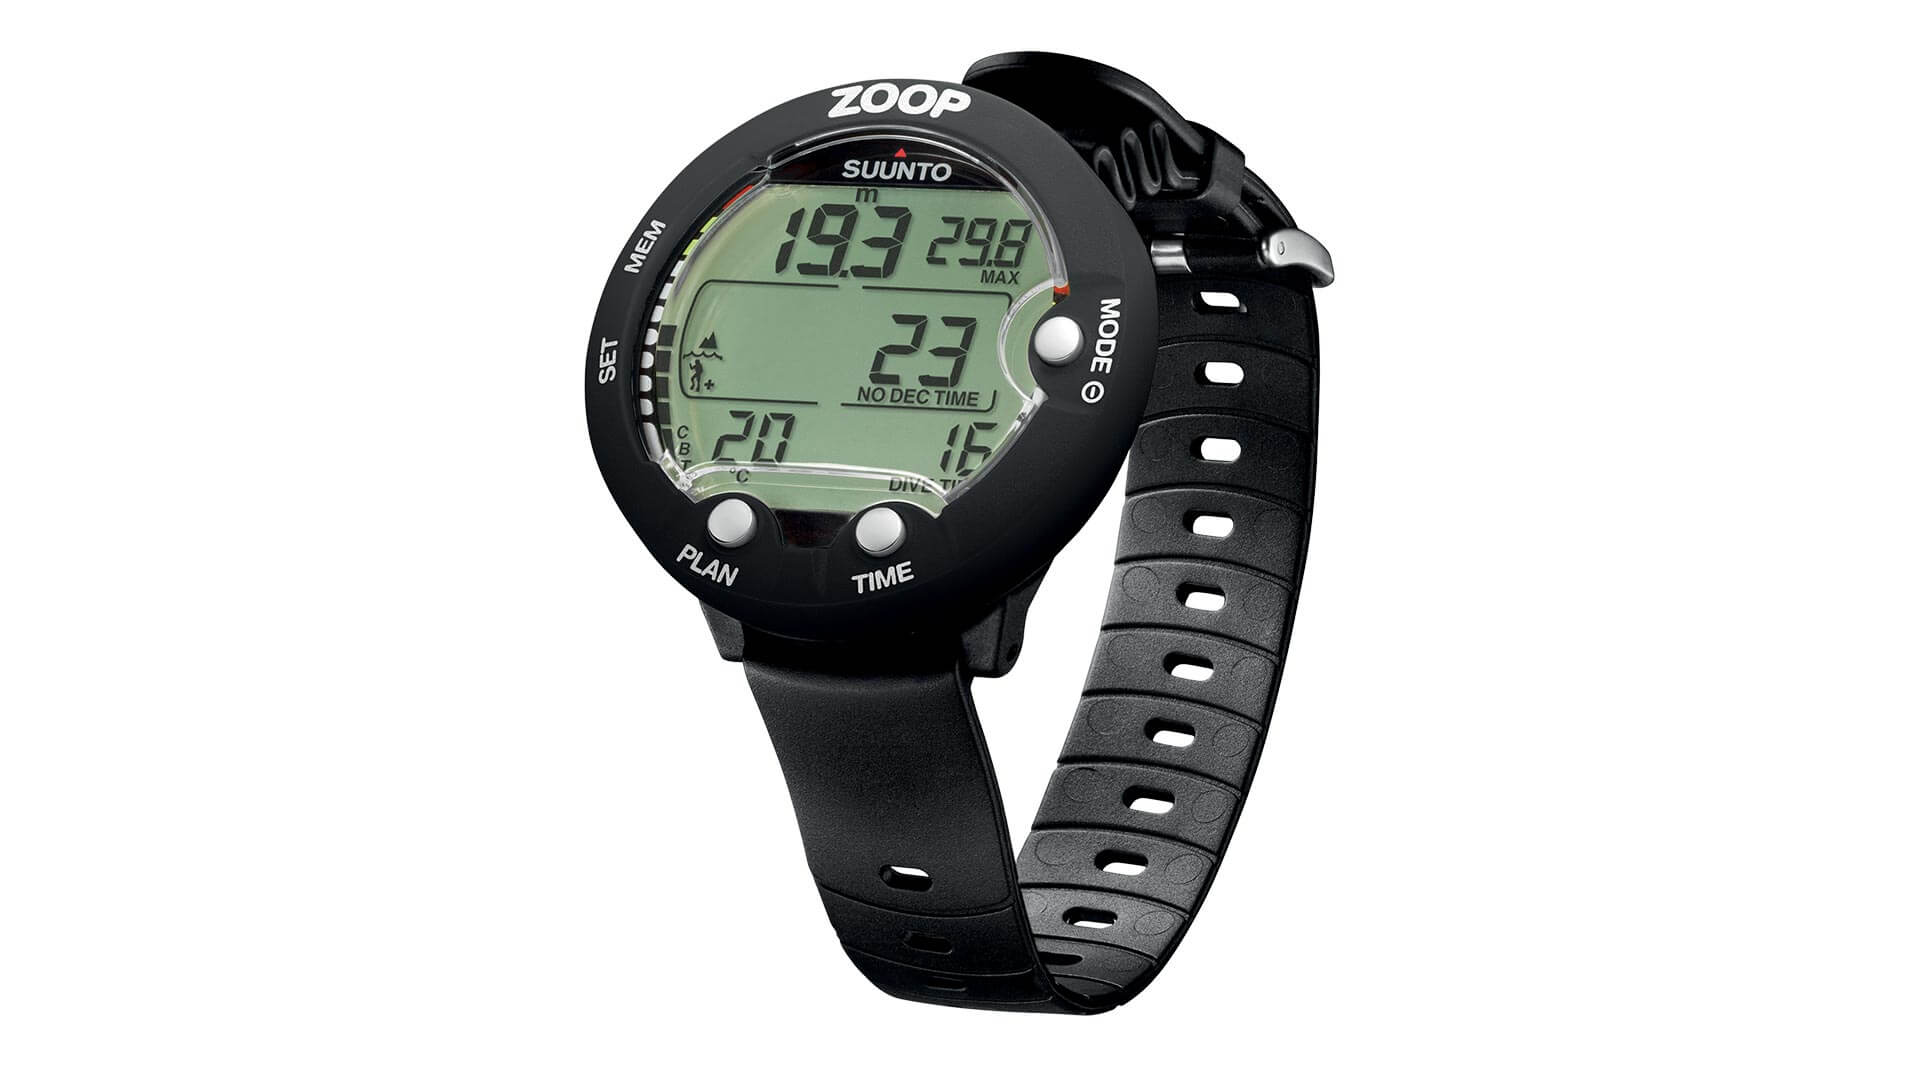 Suunto Zoop Black (Old Version)- THB 8,995 – Discontinued